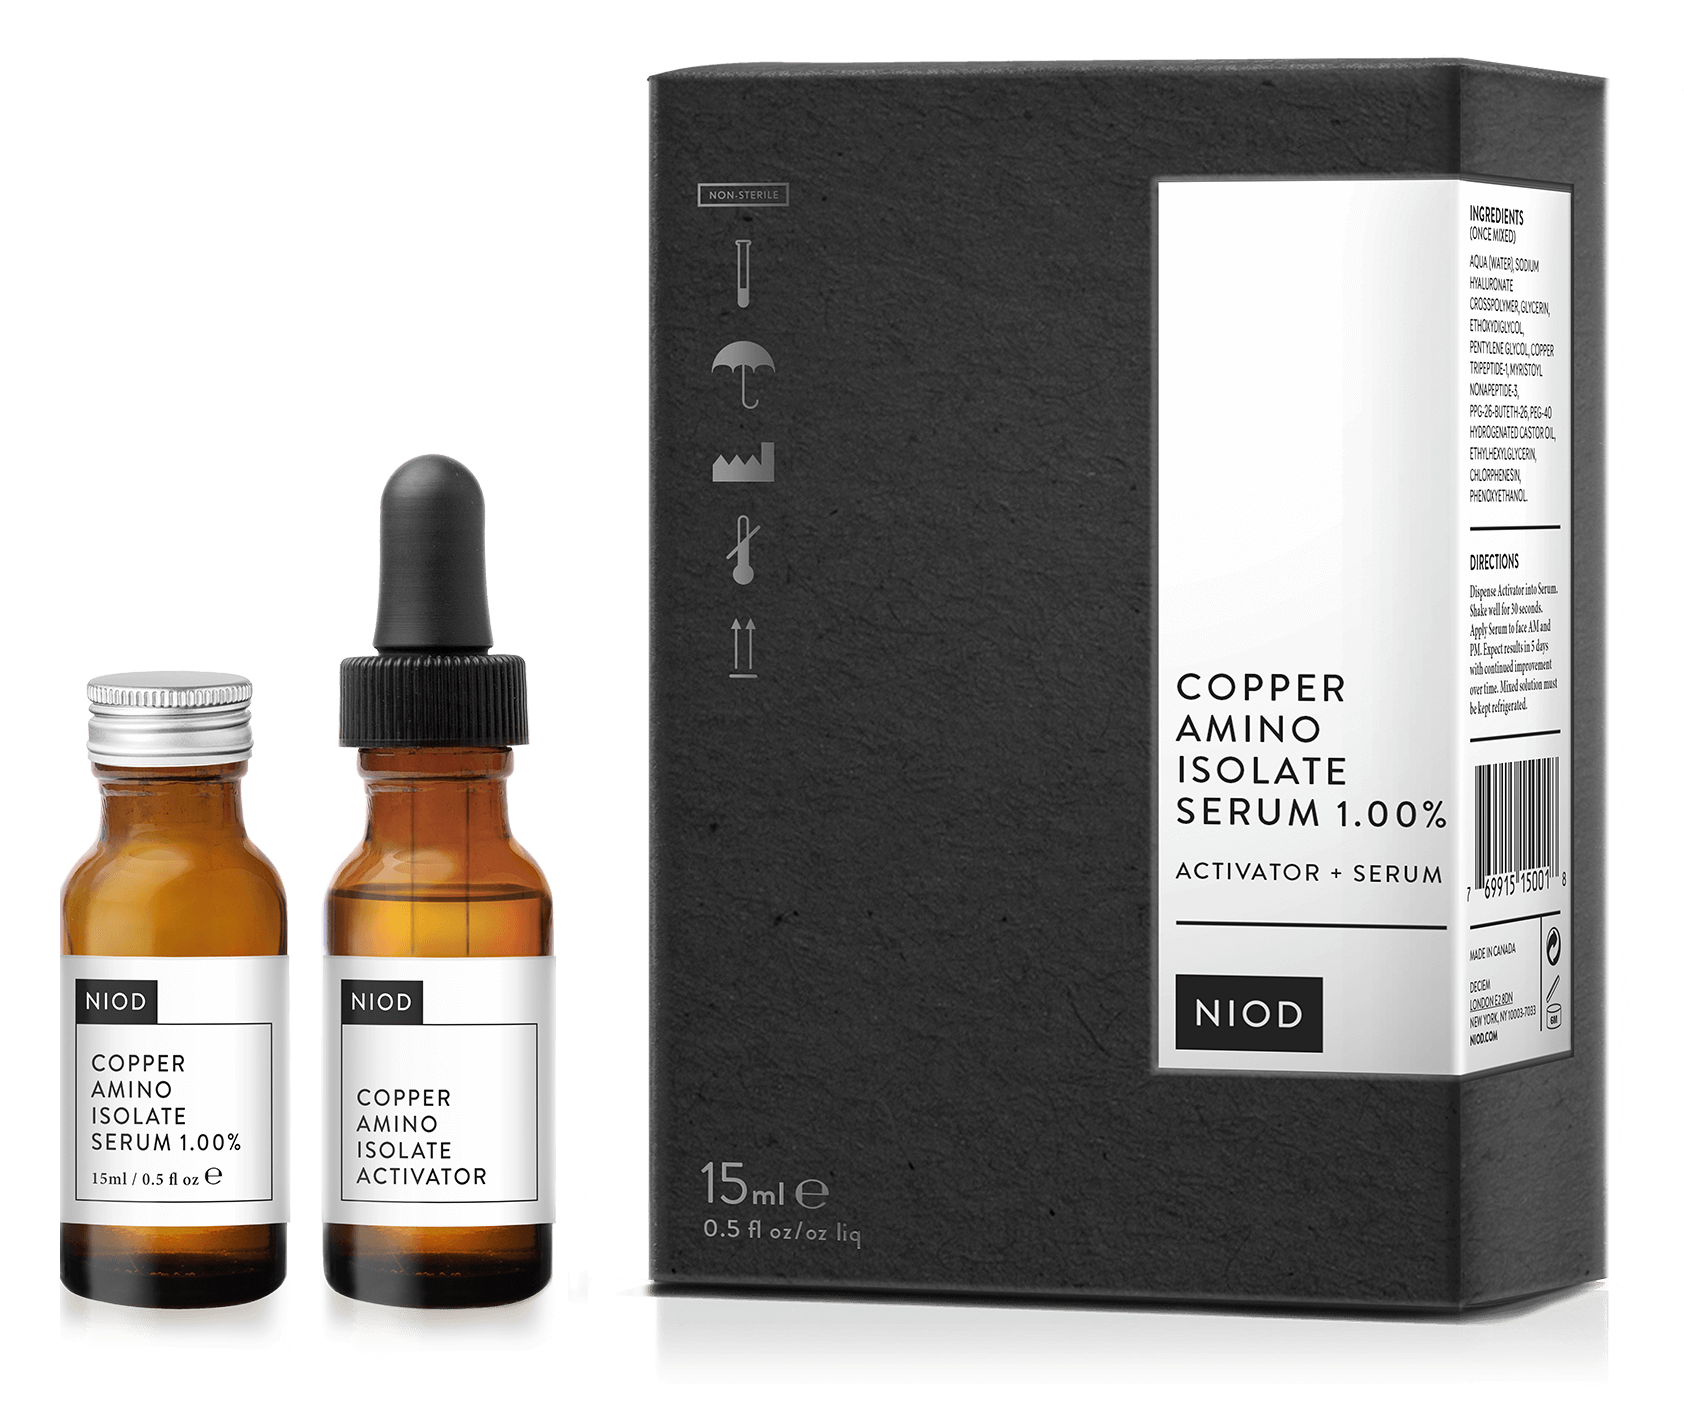 Copper Amino Isolate Serum